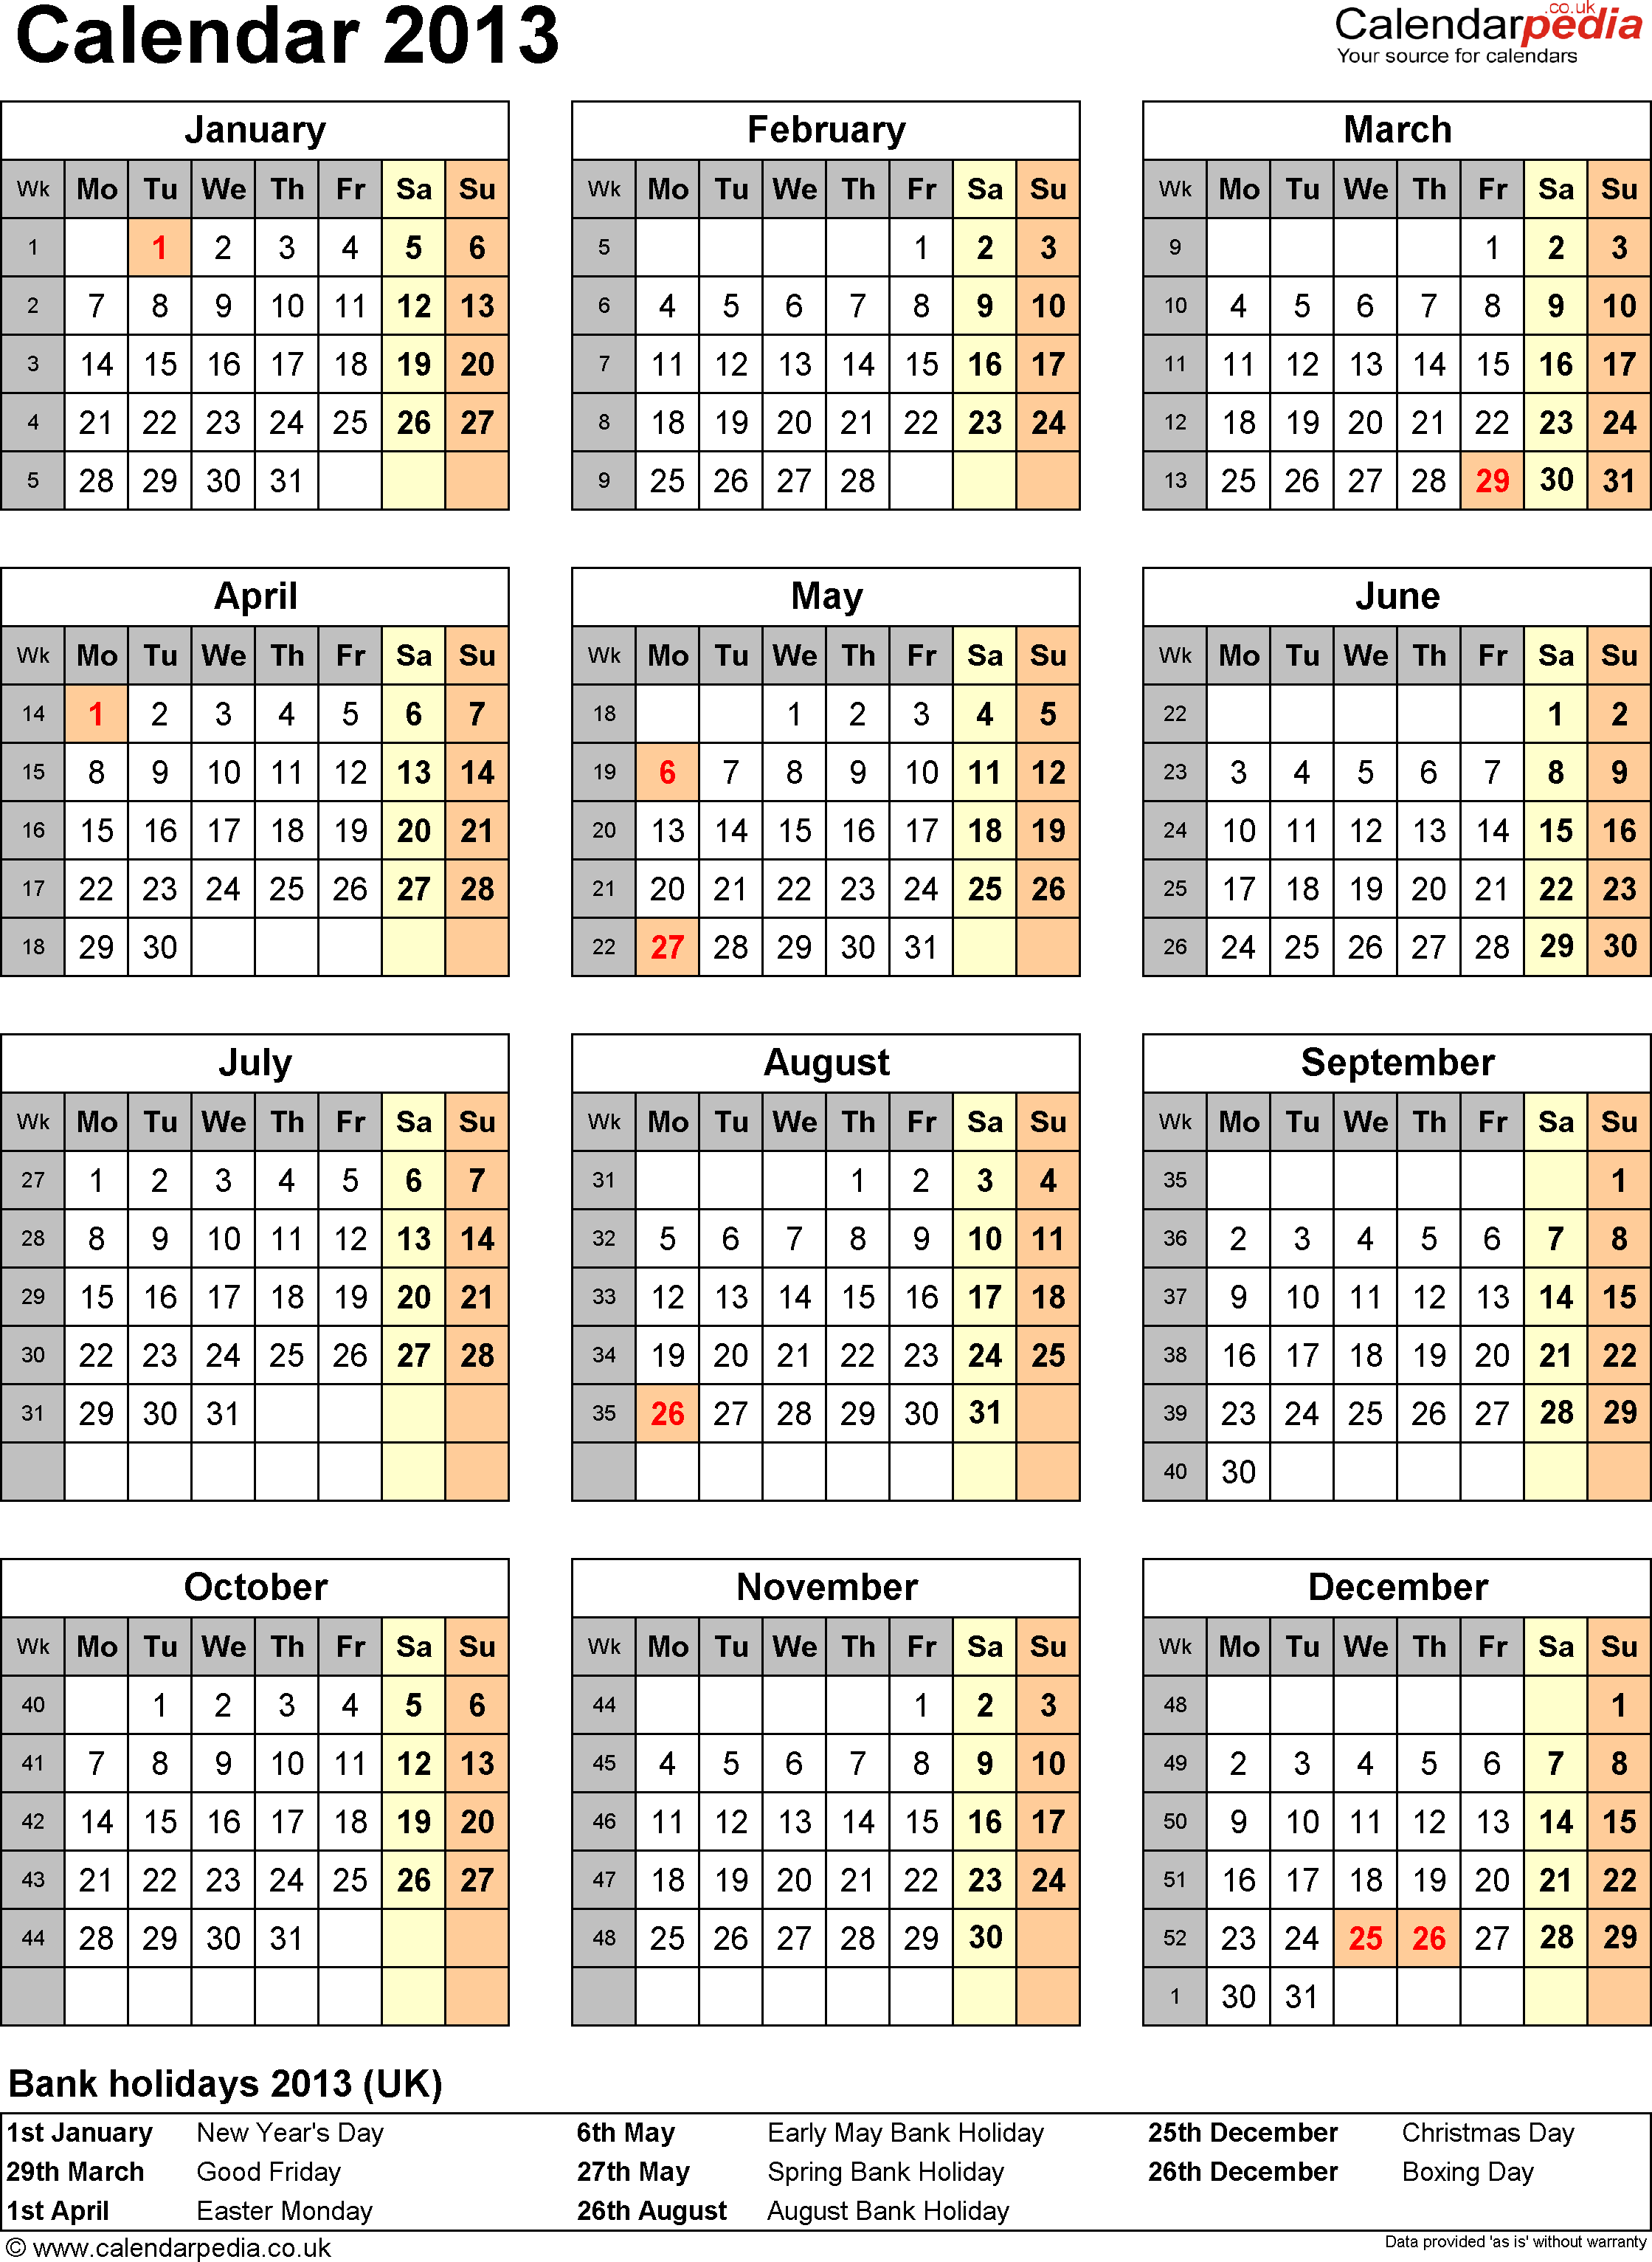 Download Template 11: Yearly calendar 2013 as Word template, portrait orientation, one A4 page